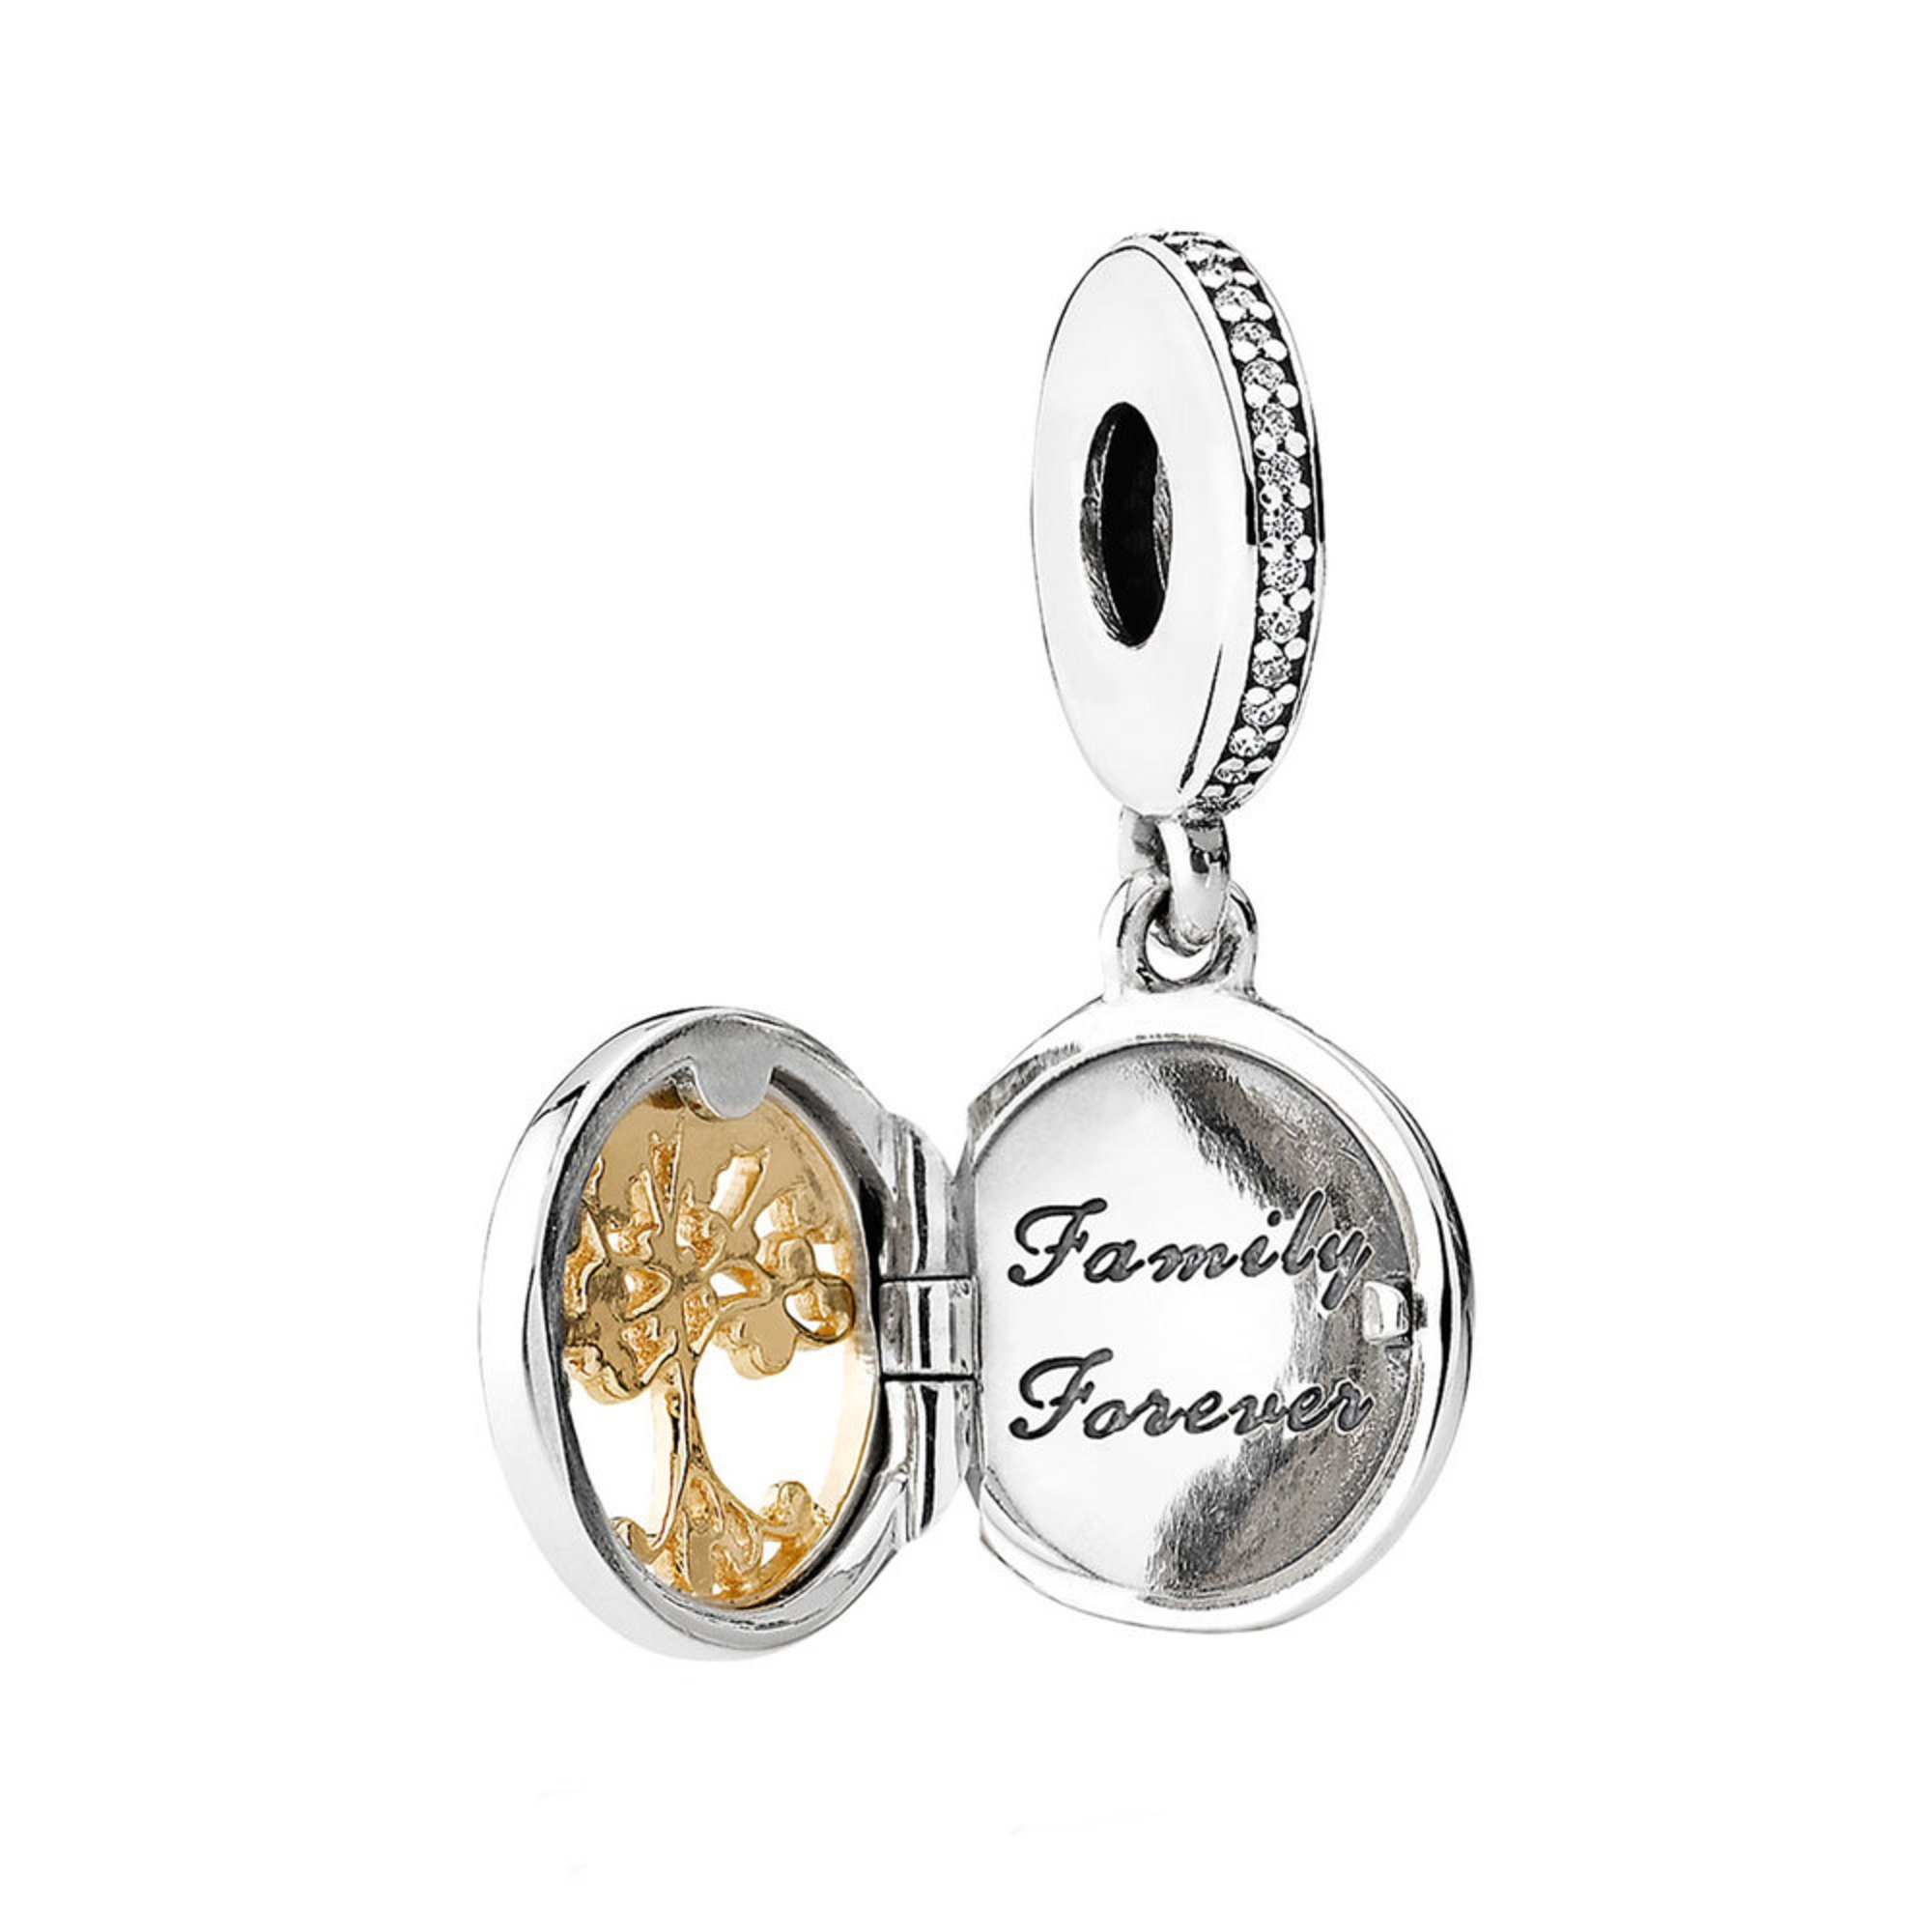 f2ddfd324 Pandora Family Roots Dangle Charm, Clear Cubic Zirconia | Charms ...